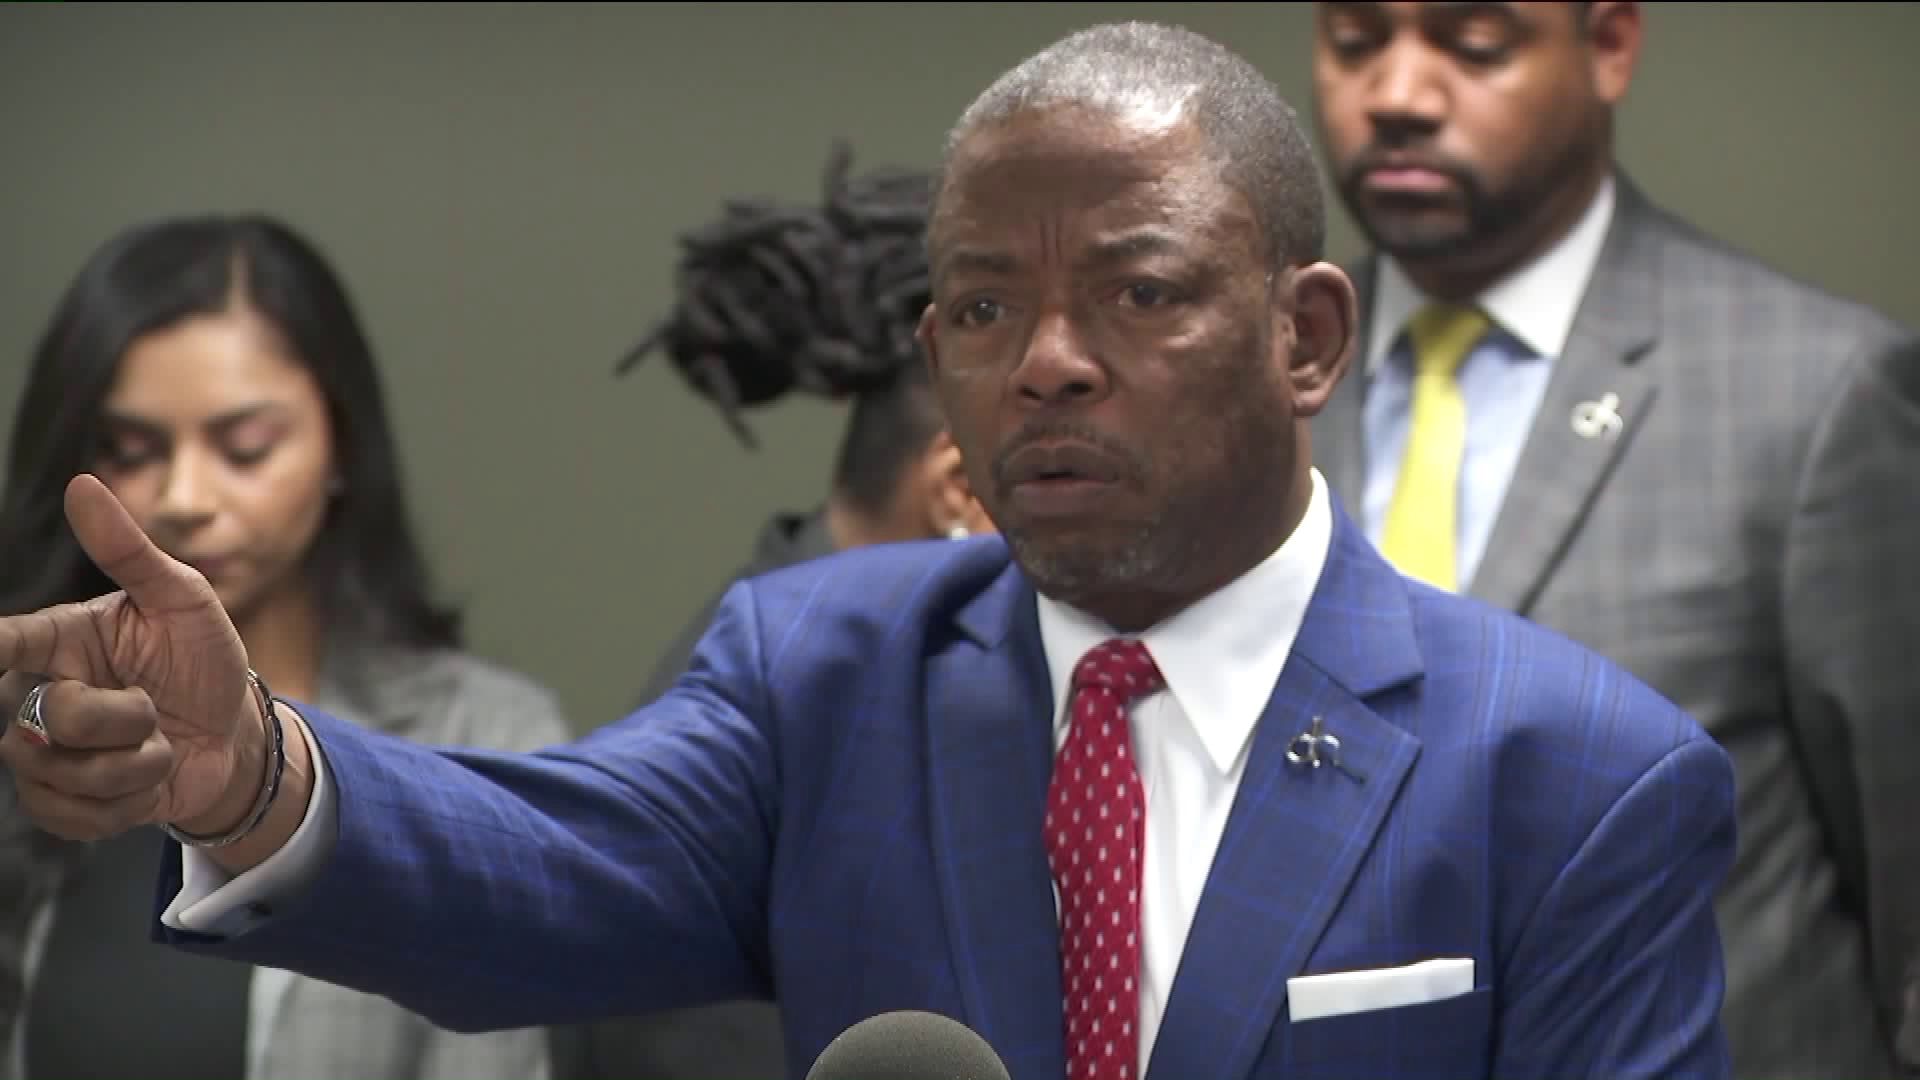 Attorney Carl E. Douglas speaks at a news conference on Dec. 11, 2018, where he announced a lawsuit against Walgreens on behalf of the family of the man shot and killed by a store security guard. (Credit: KTLA)